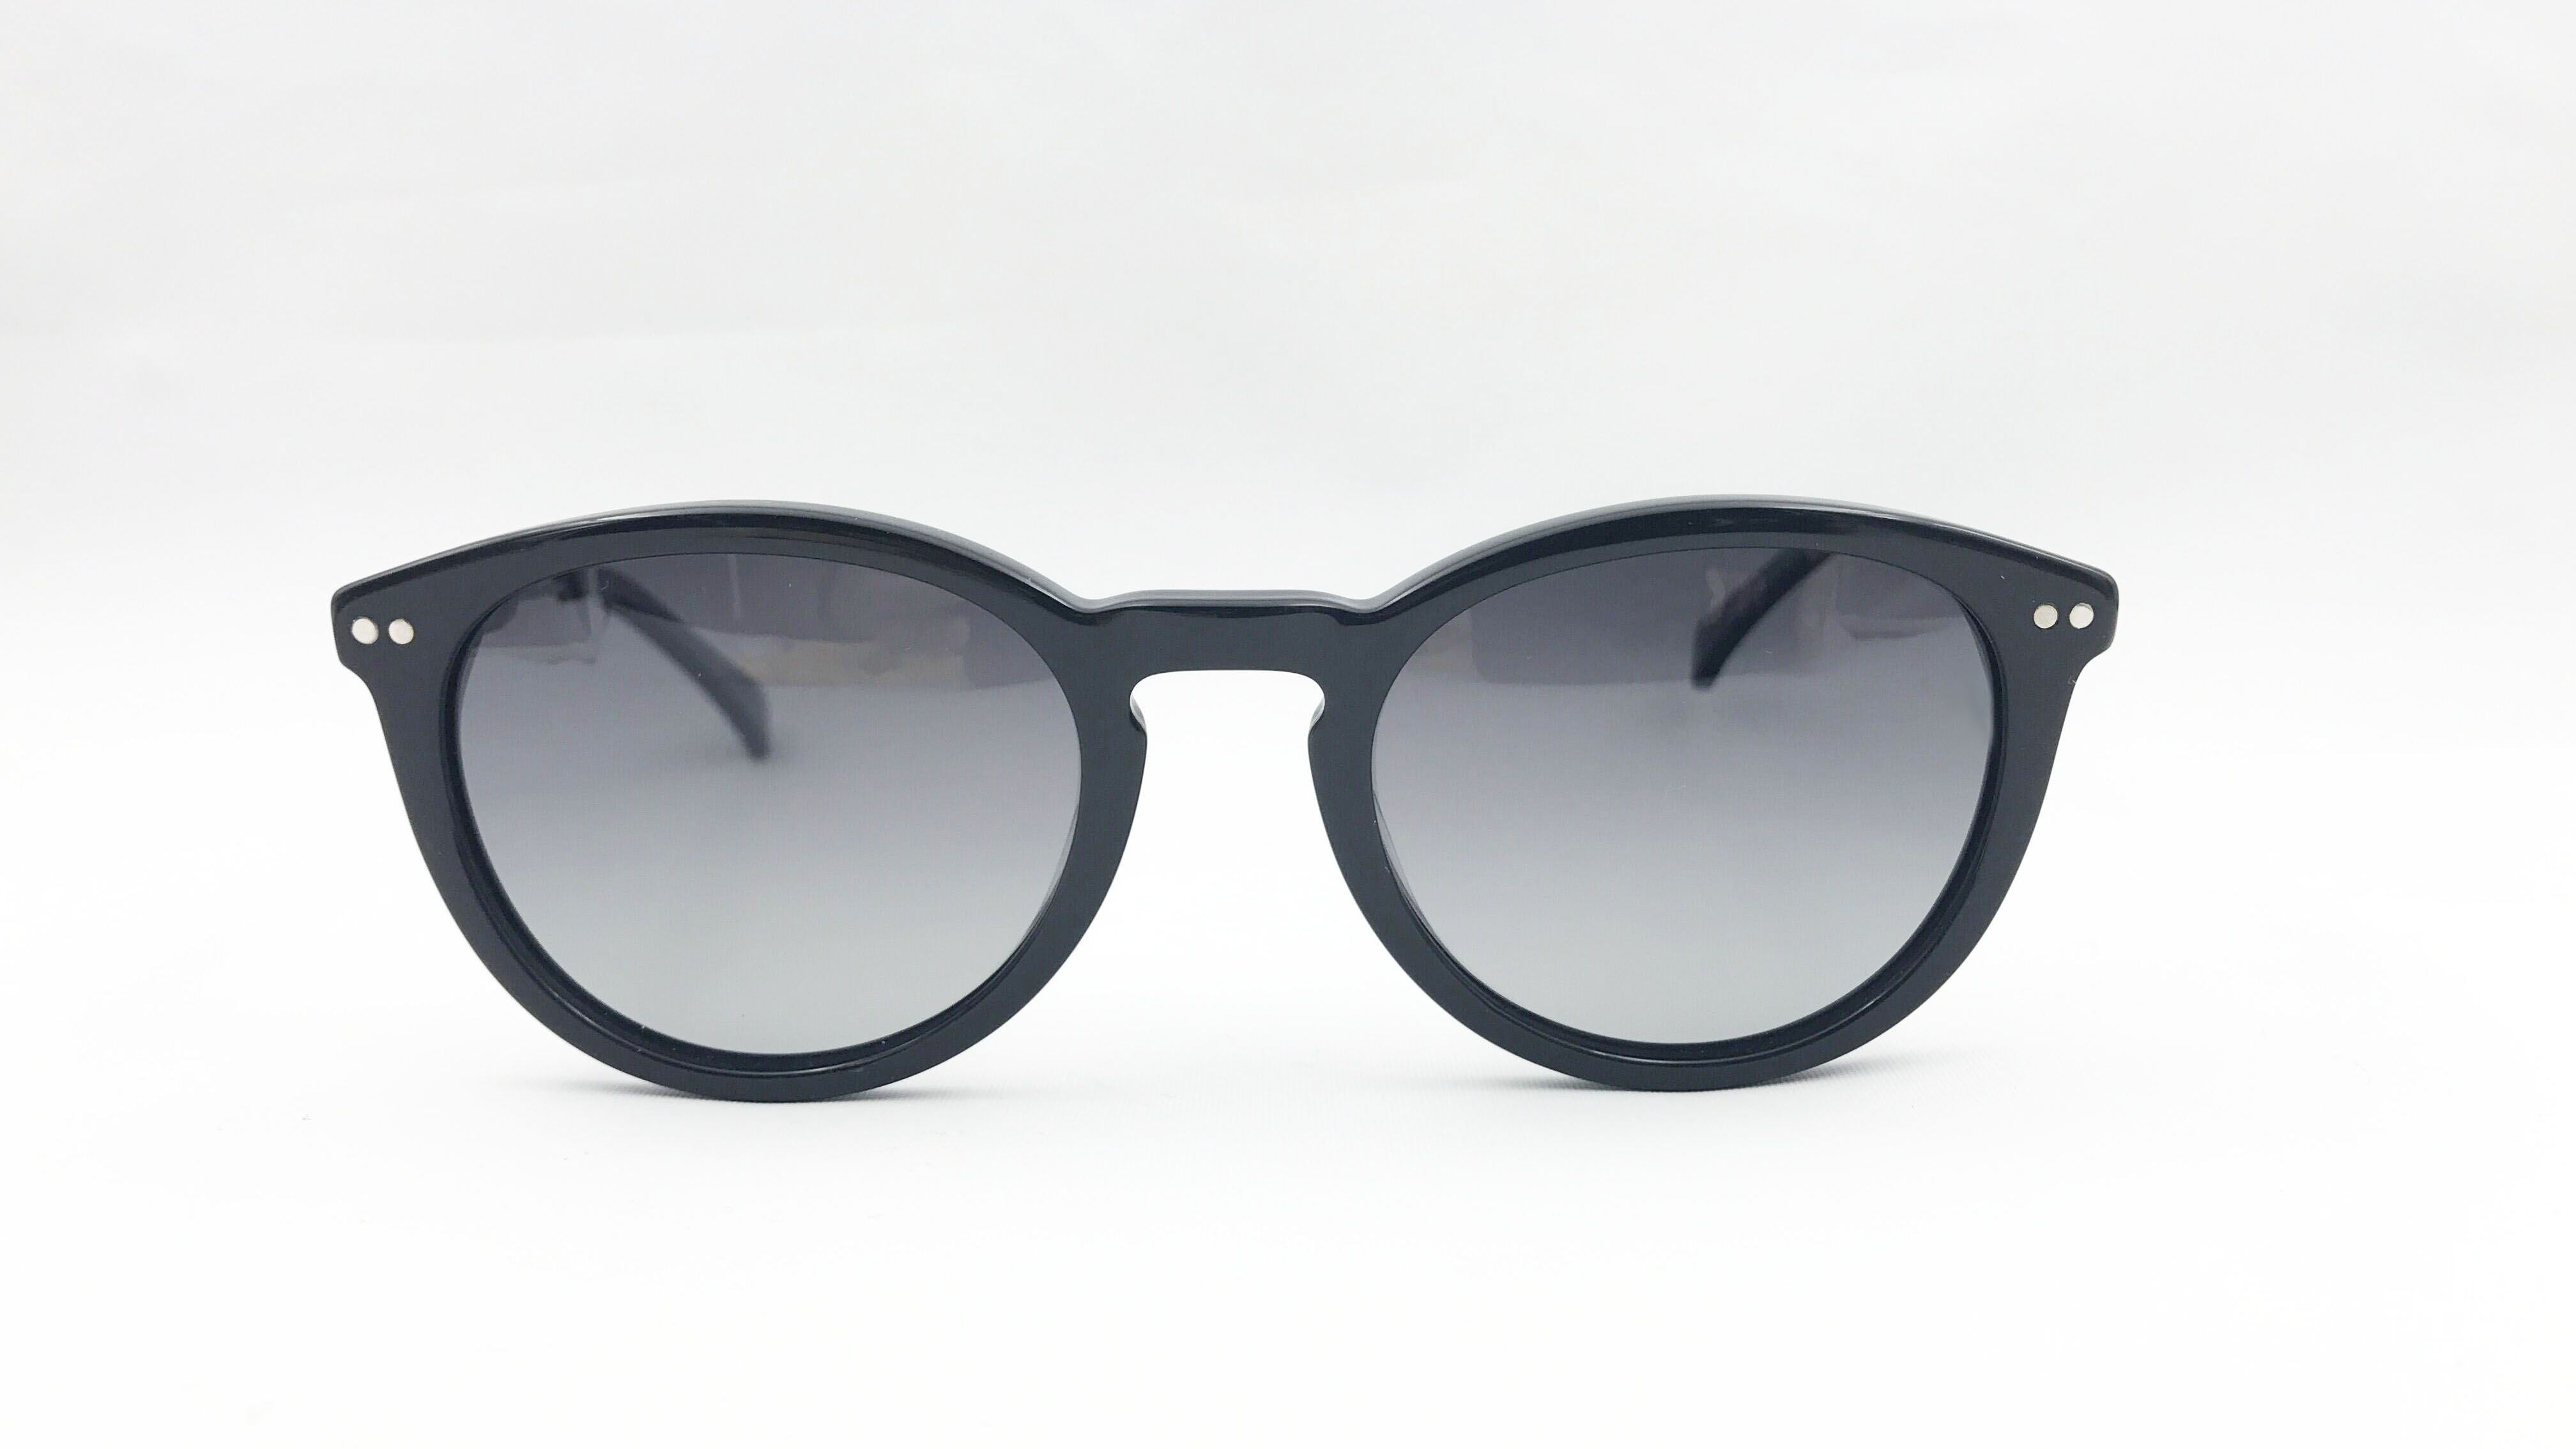 Classic and Popular Acetate Sunglasses for Lady and Man.